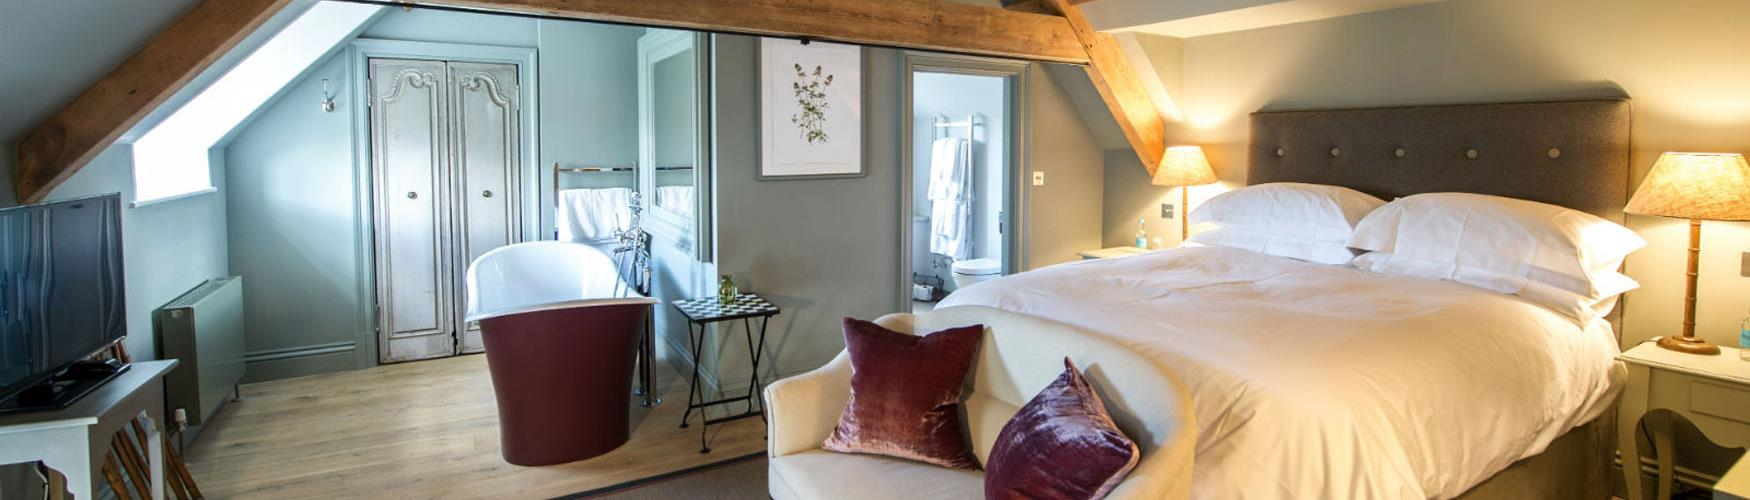 A bedroom suite at Thyme